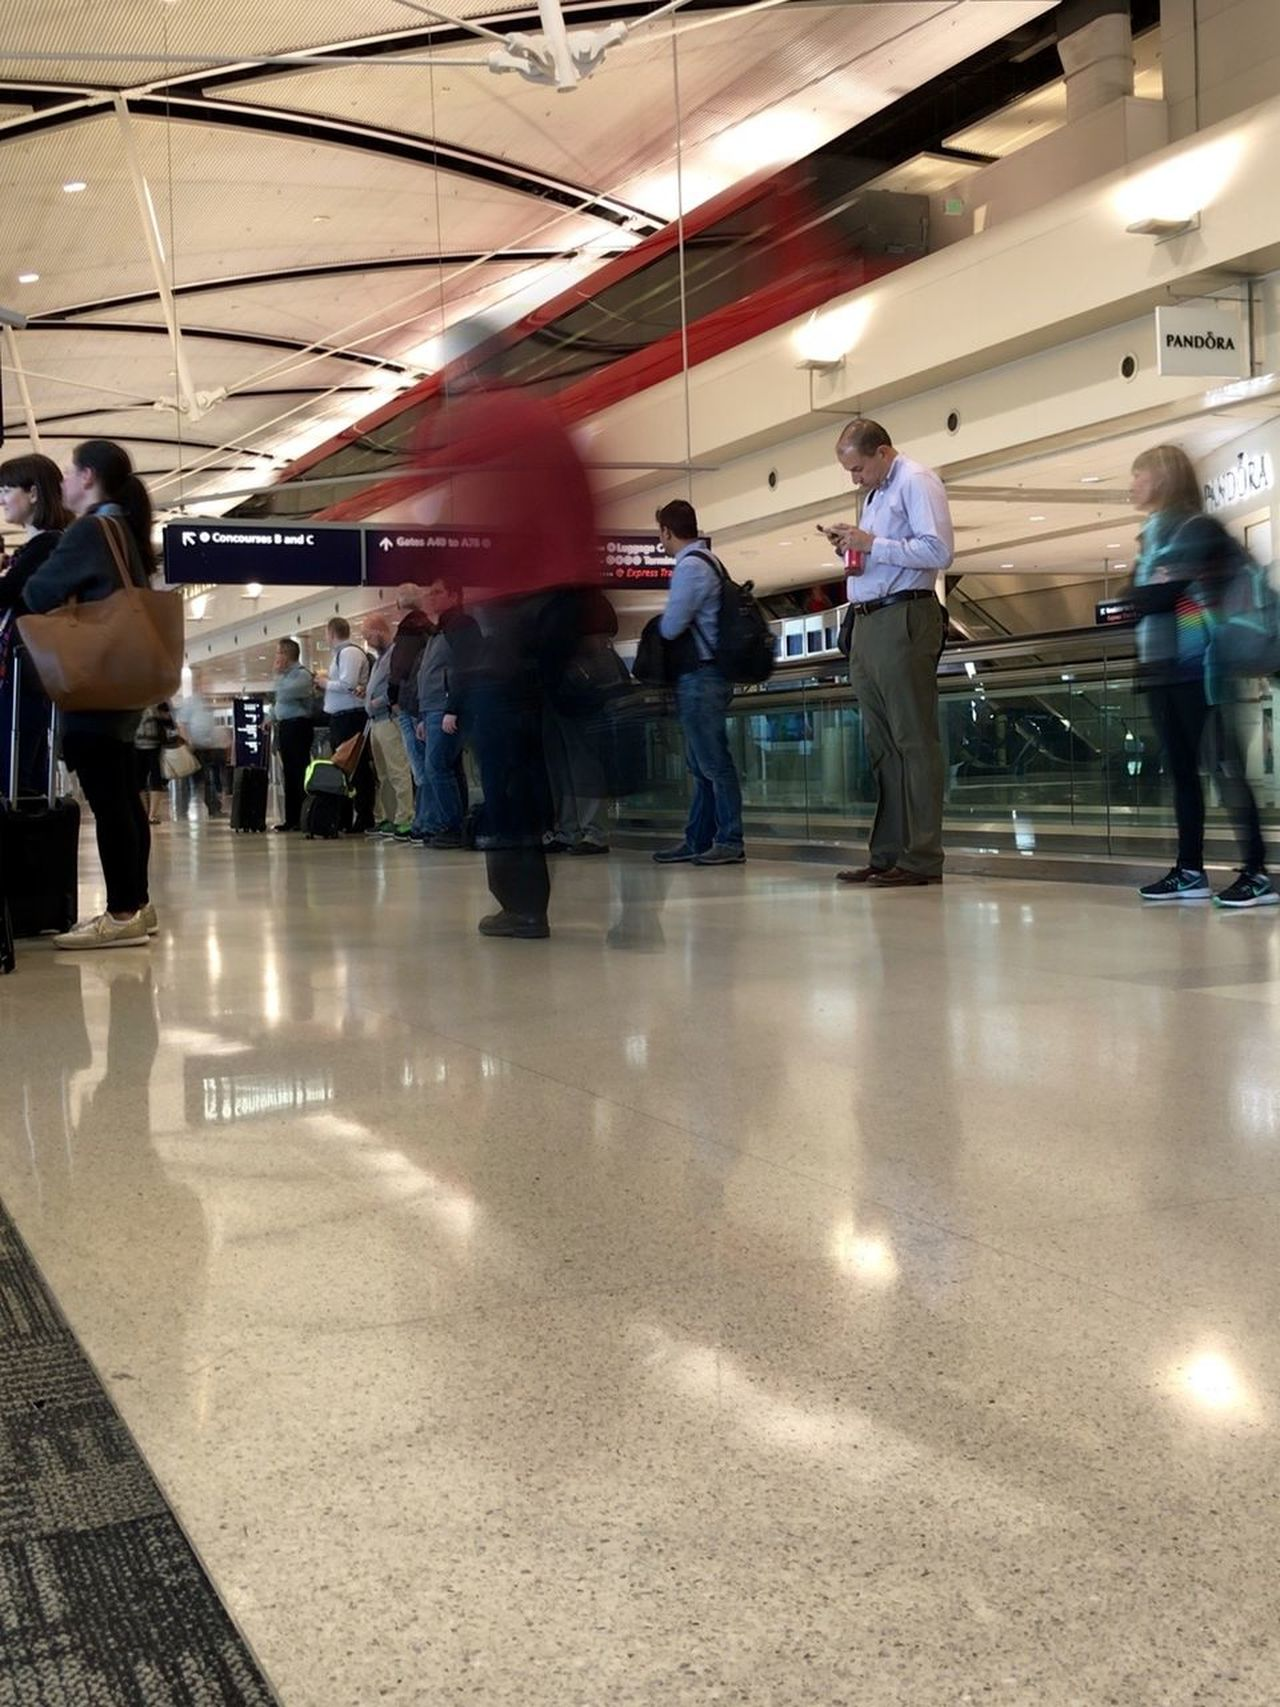 Airport Indoors  IPhone 7 Plus IPhone 7Plus IPhoneography Journey Passenger Public Transportation Real People Standing Transportation Travel Waiting Walking